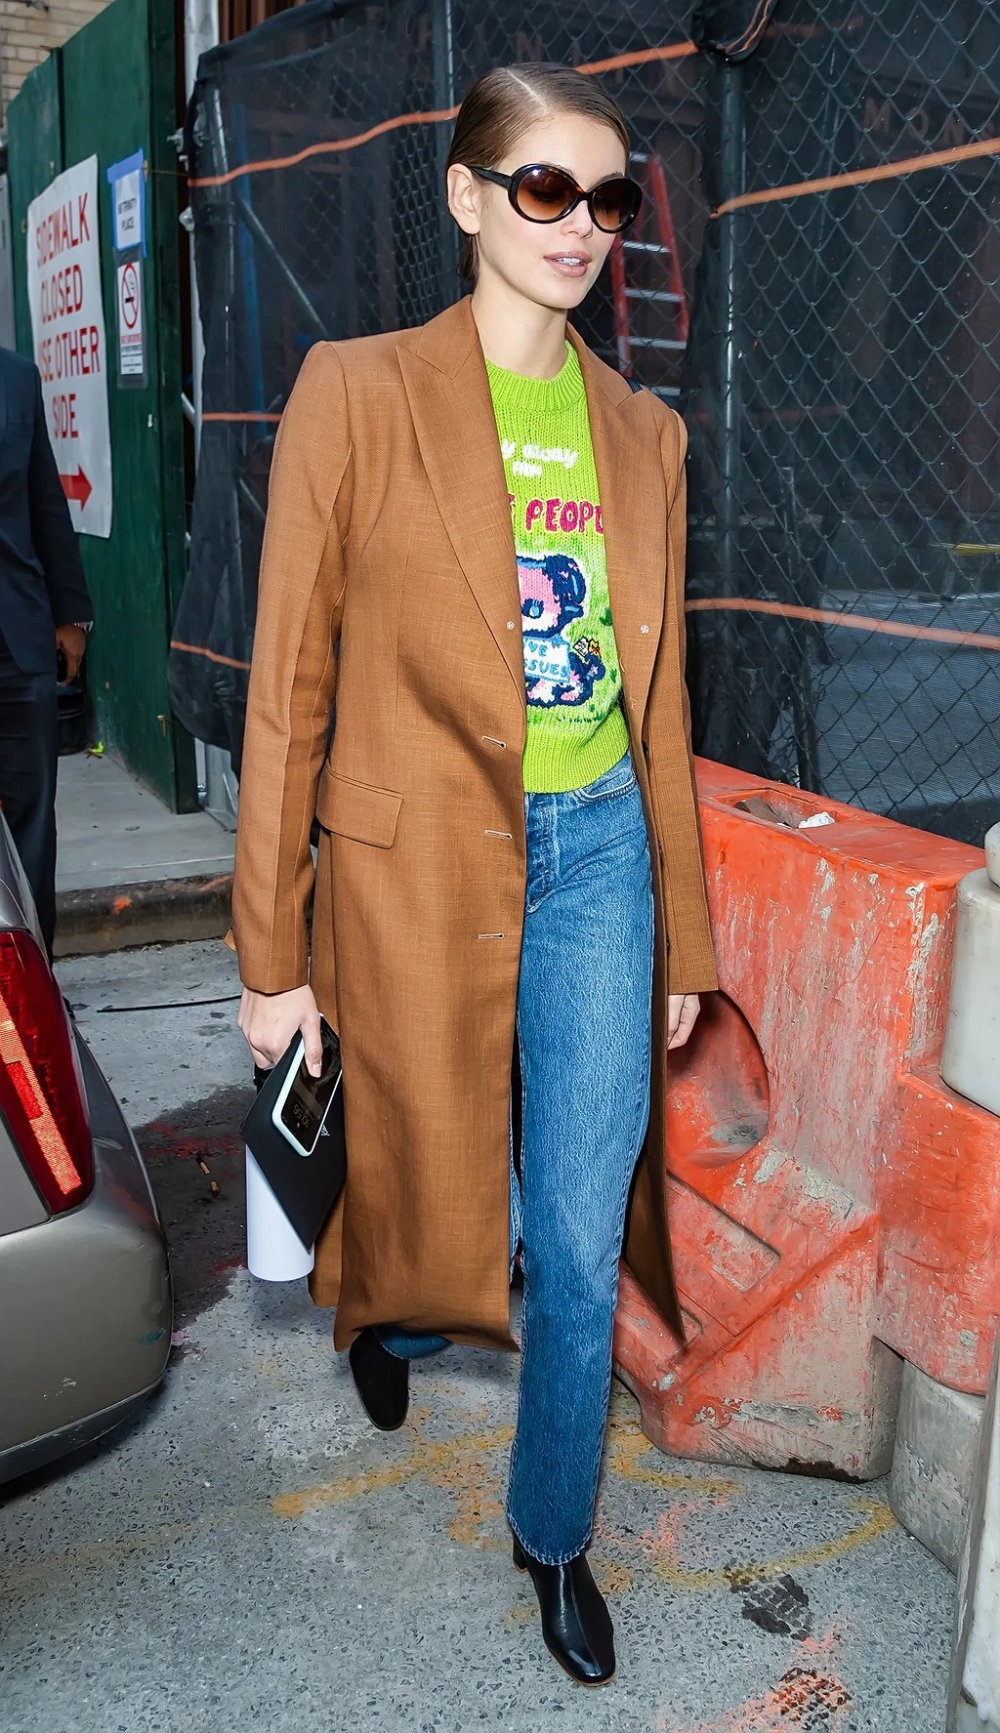 Photo of 7 Pairs Of '90s-Inspired Sunglasses In Kaia Gerber's Vast Collection